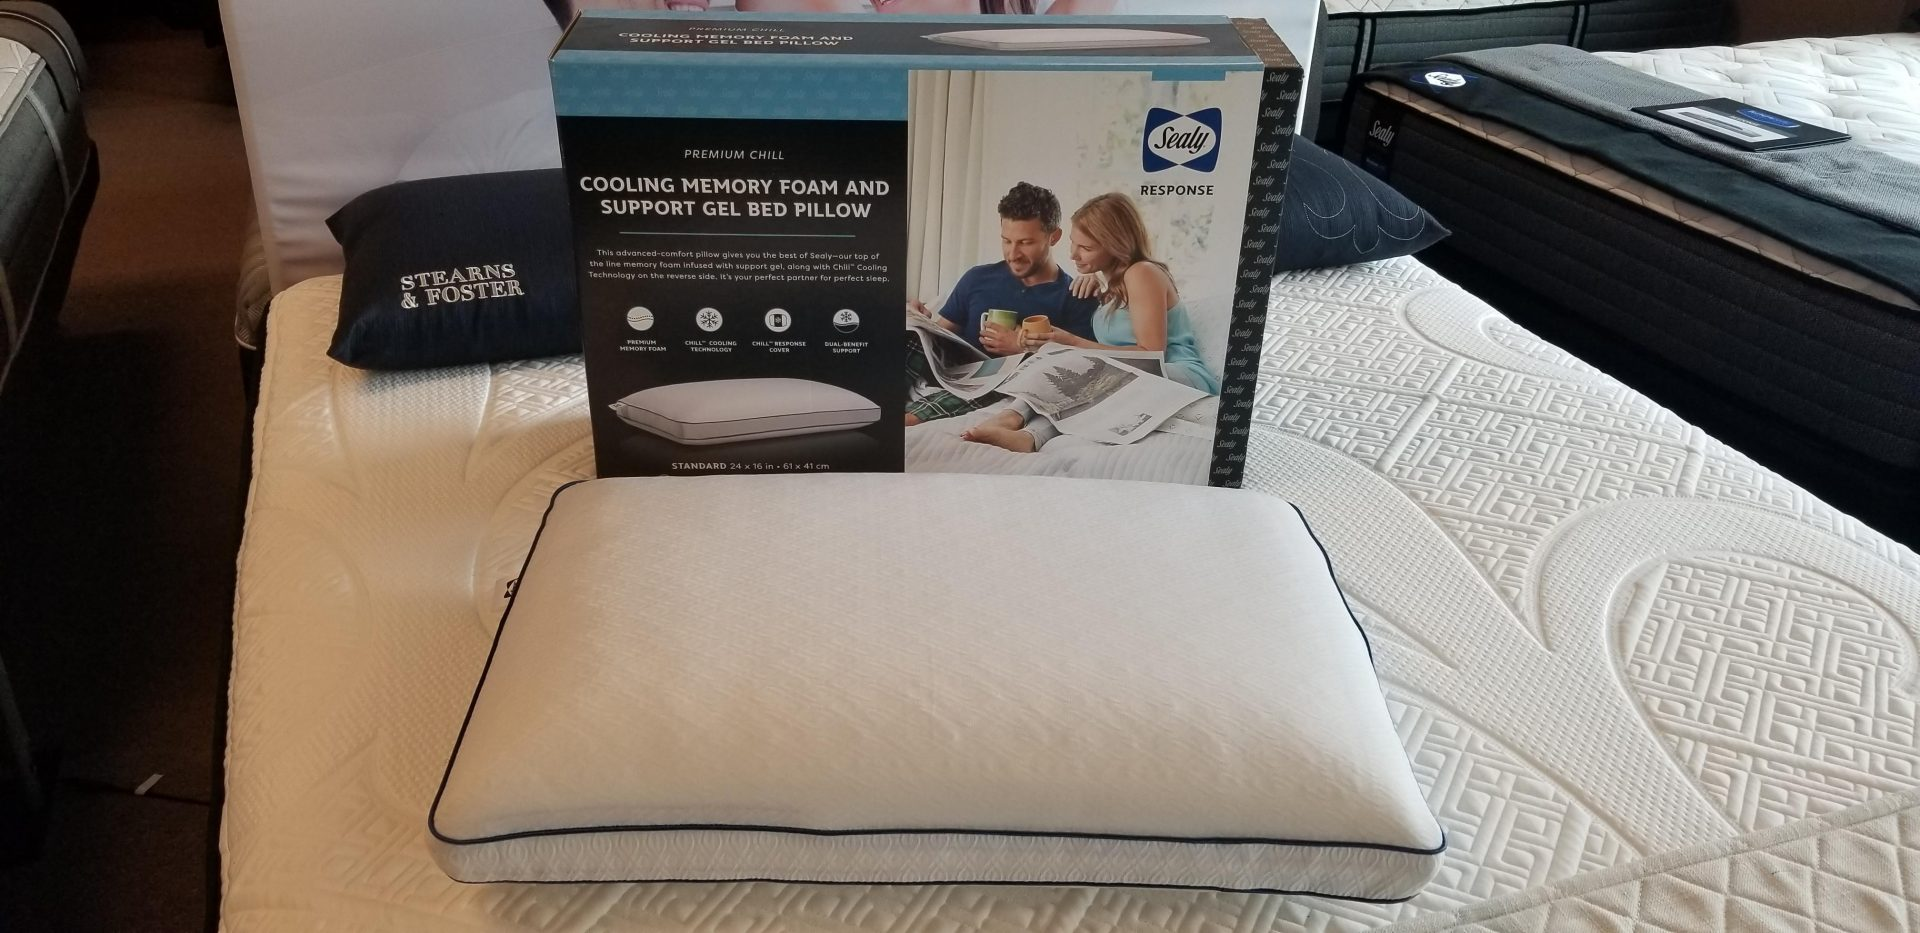 sealy response premium chill cooling